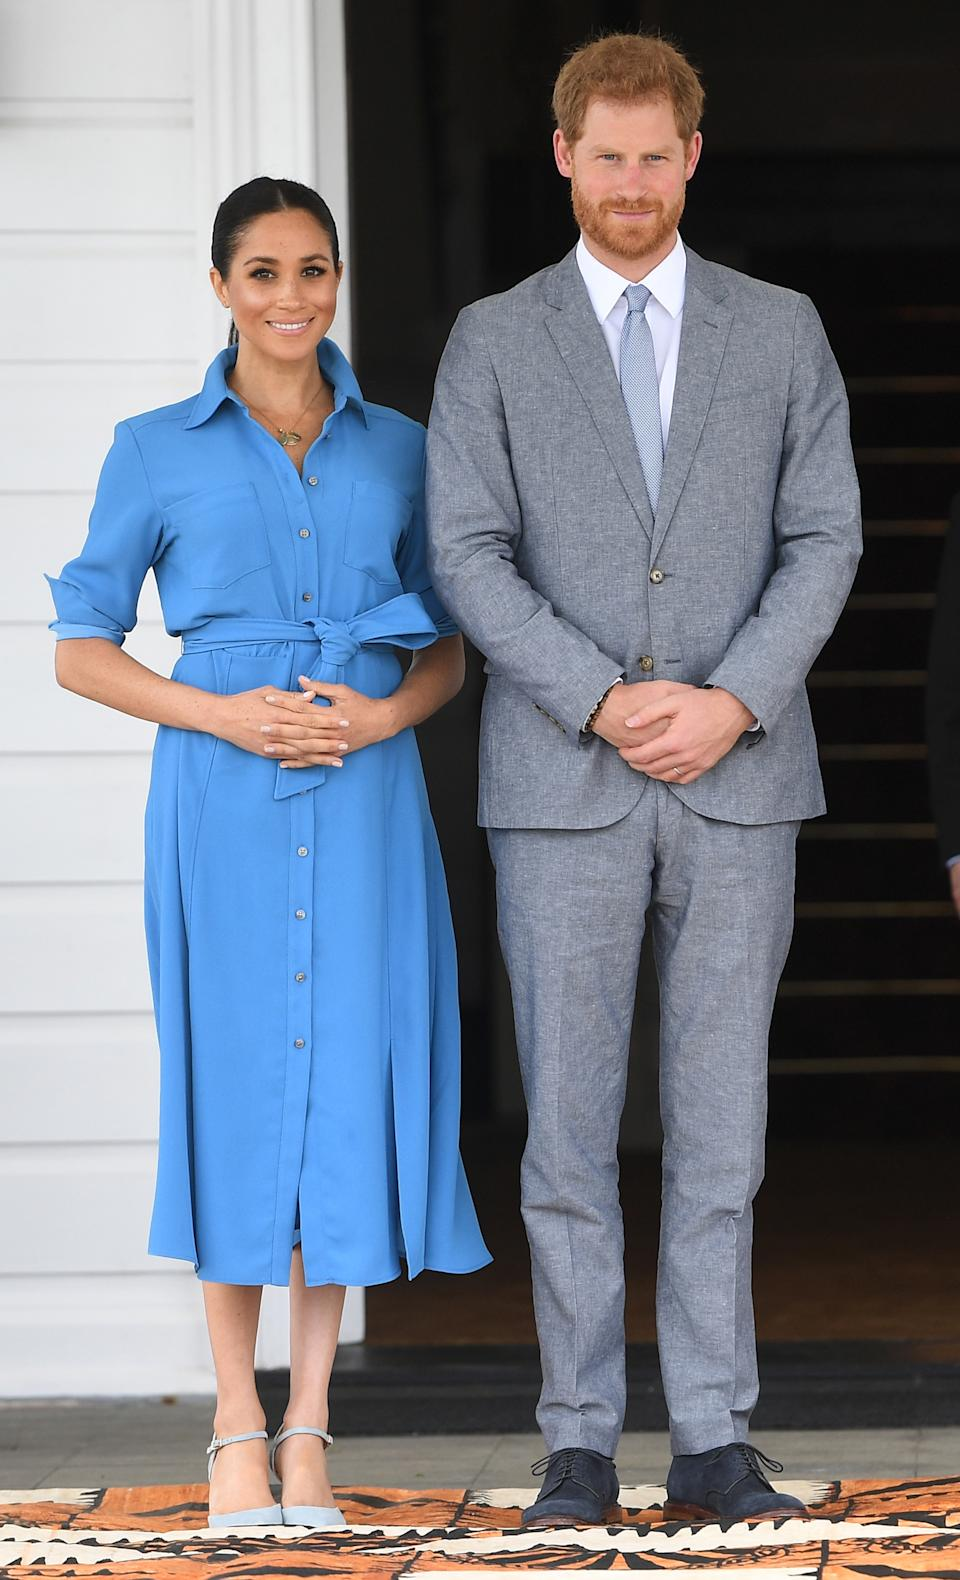 <p>The Duchess of Sussex wore a brilliant blue shirt dress to meet the King and Queen of Tonga in September 2019 during a 16 day royal tour abroad. <em>(Image via Getty Images)</em></p>